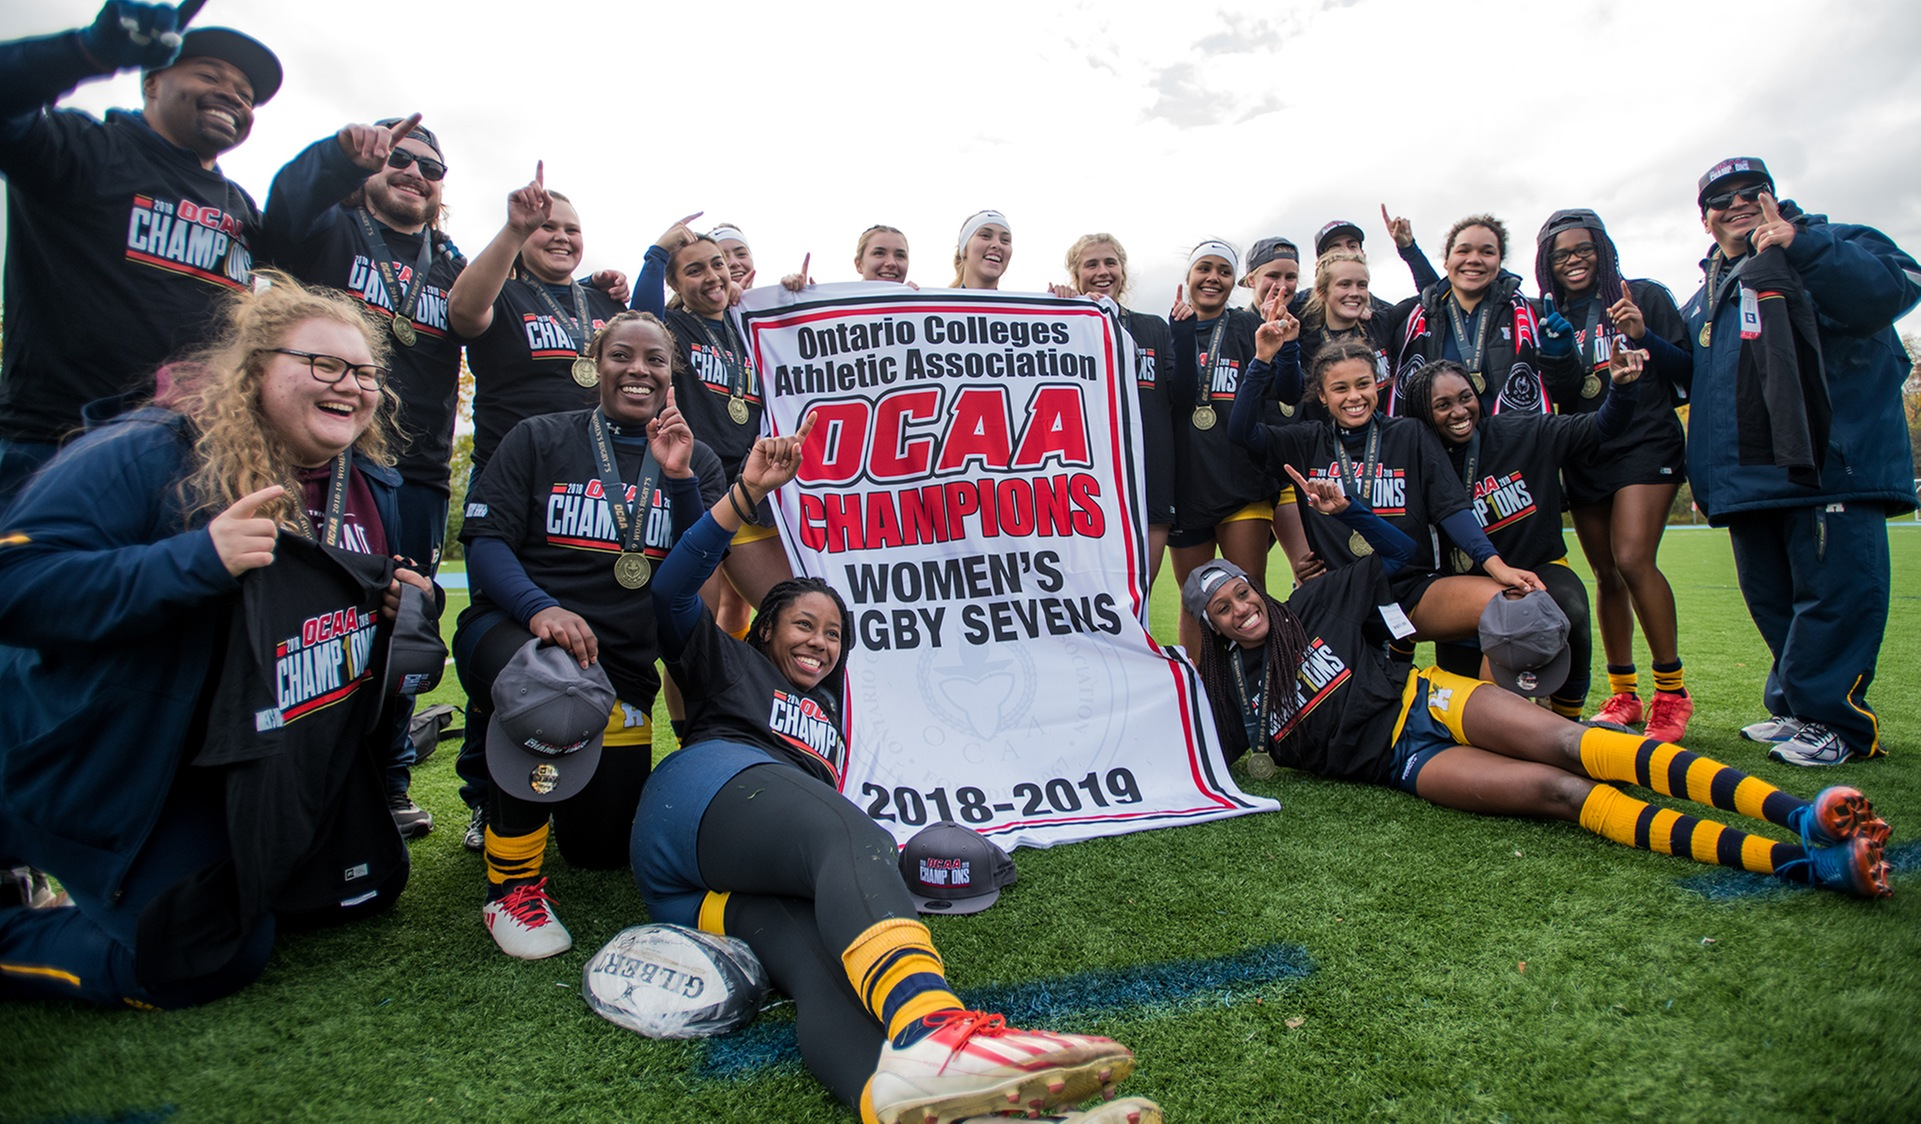 WOMEN'S RUGBY BEATS UNDEFEATED ALGONQUIN FOR OCAA TITLE, 14-5